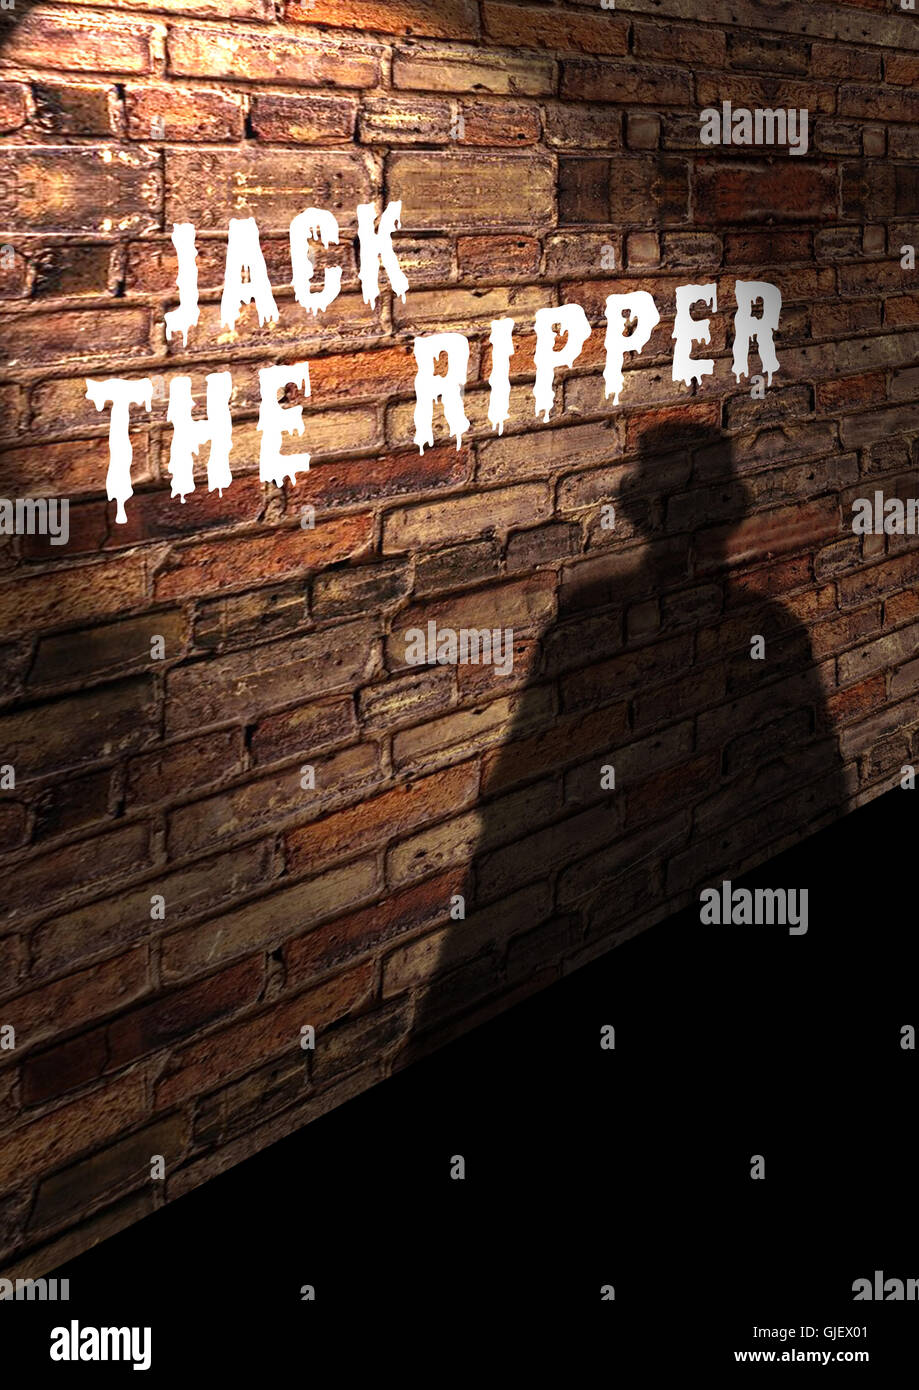 jack the ripper 01 Stock Photo